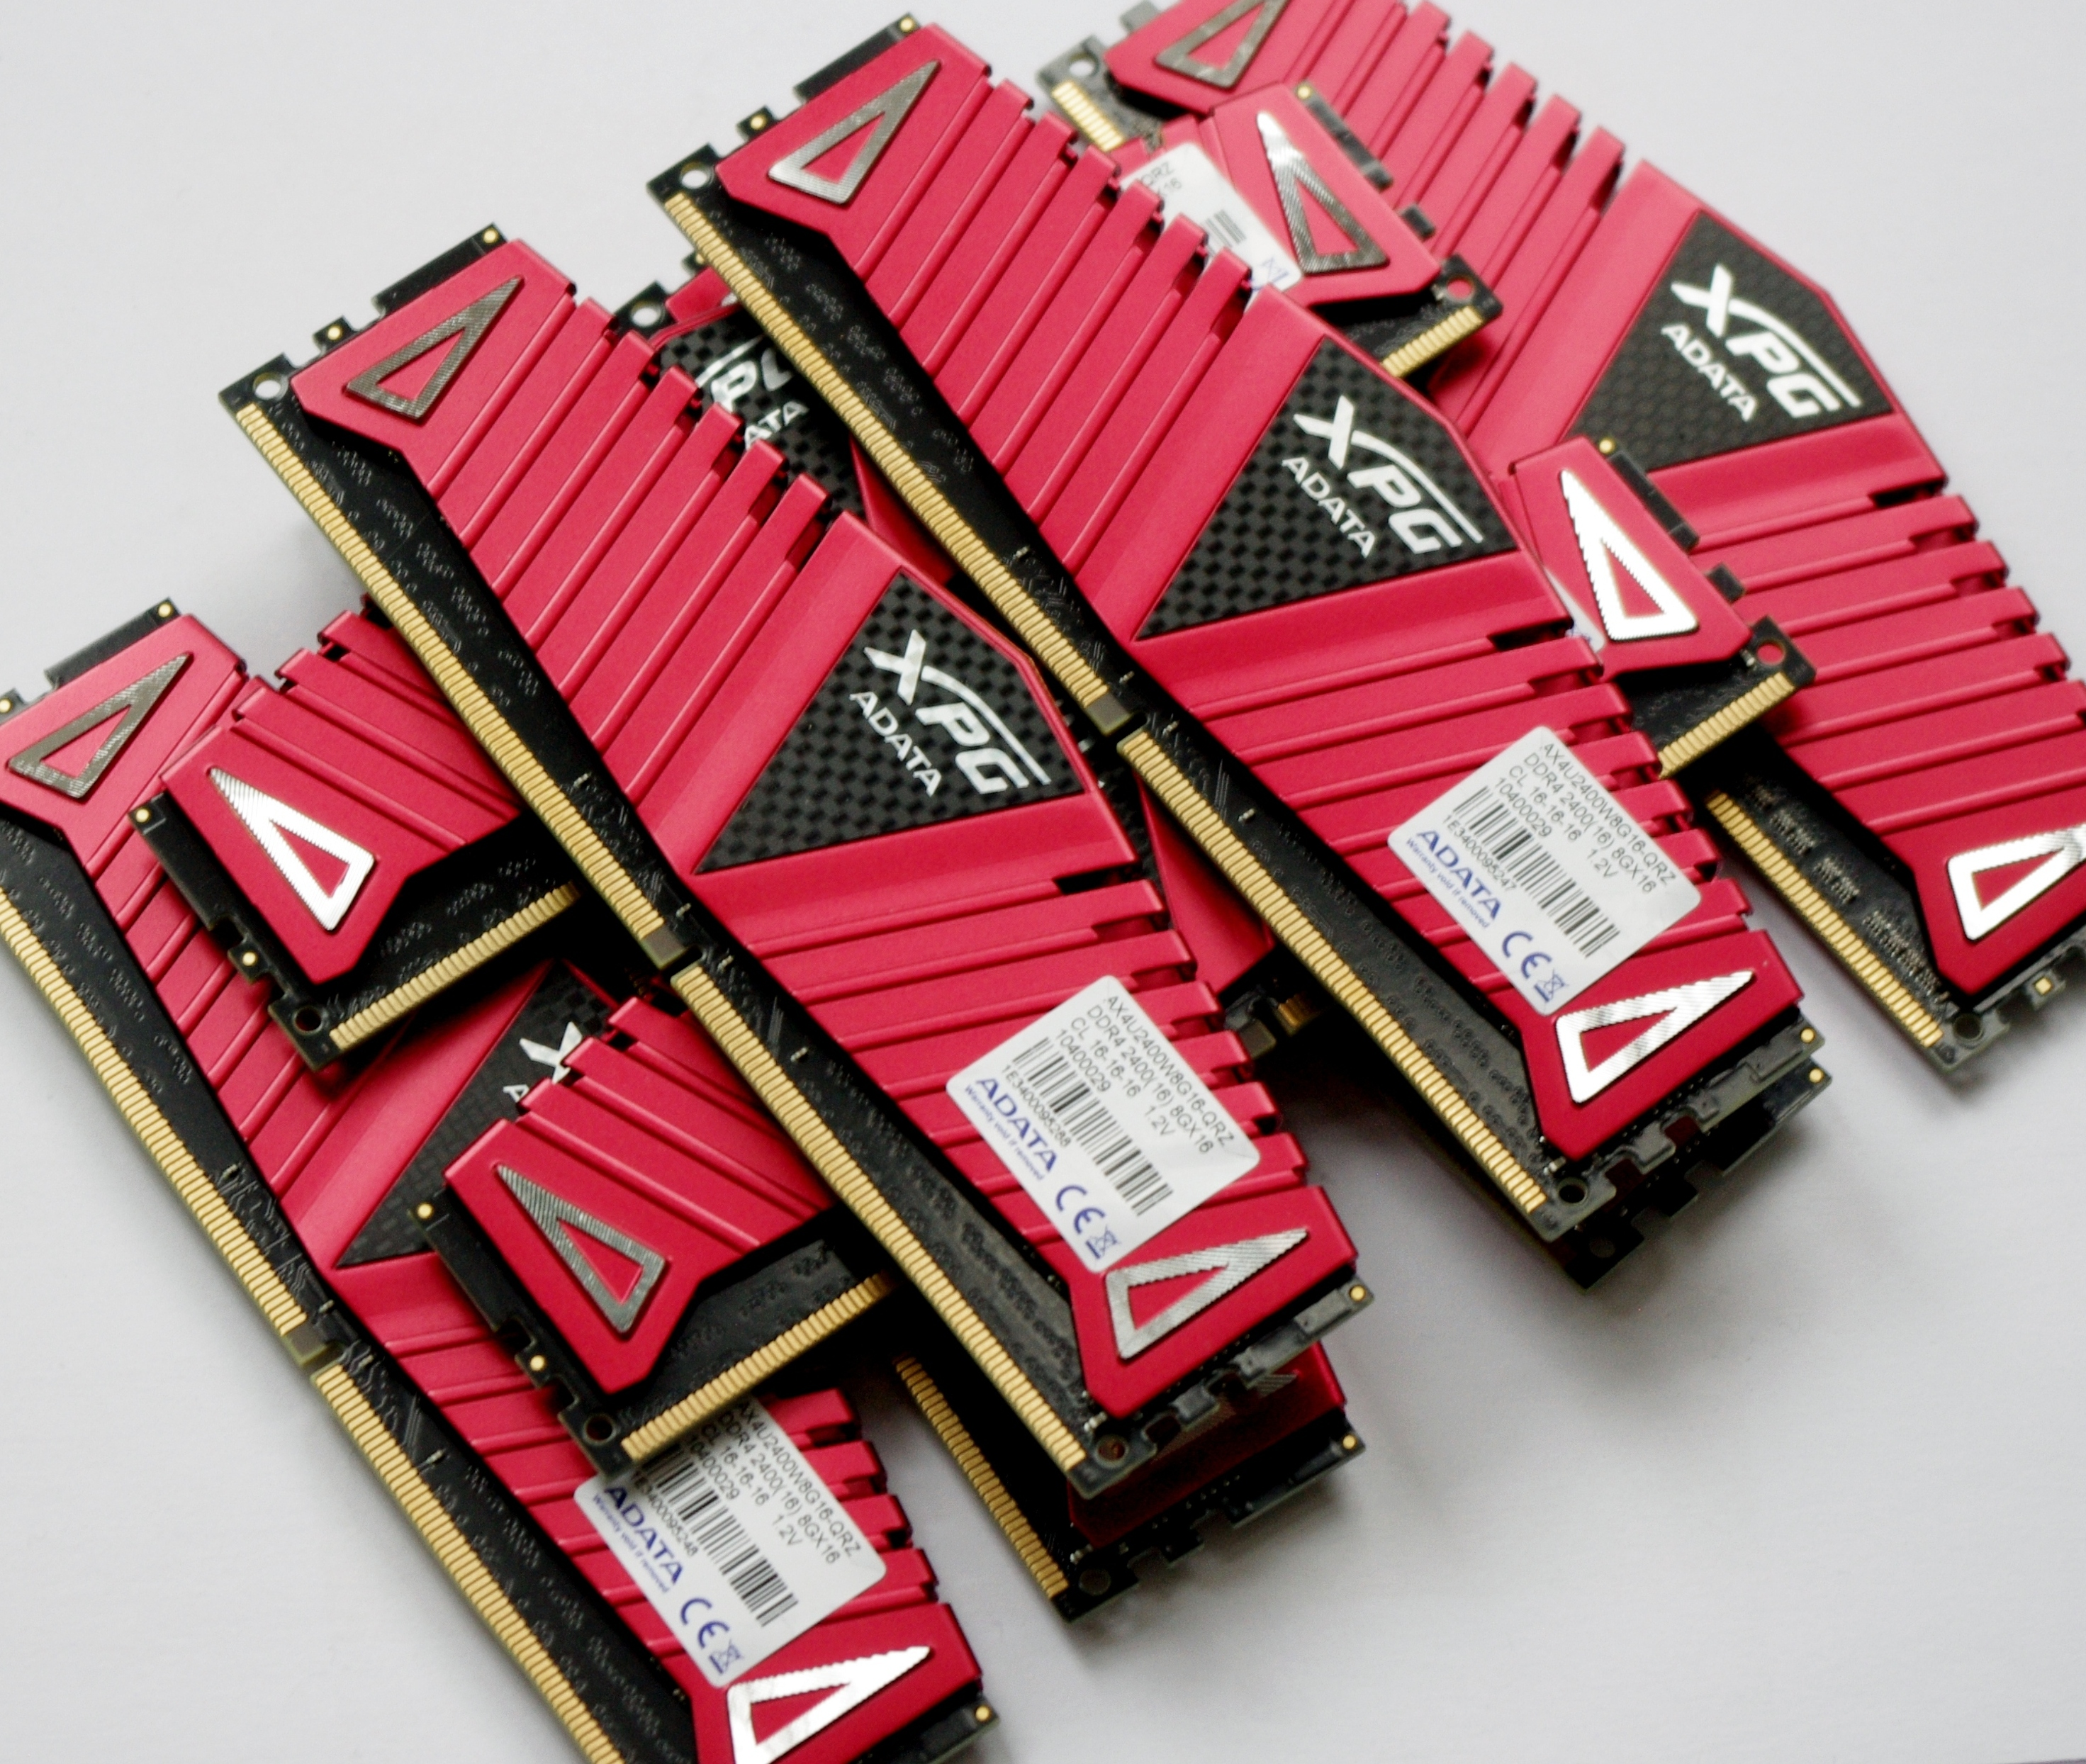 Testing The Kits and The Markets - DDR4 Haswell-E Scaling Review